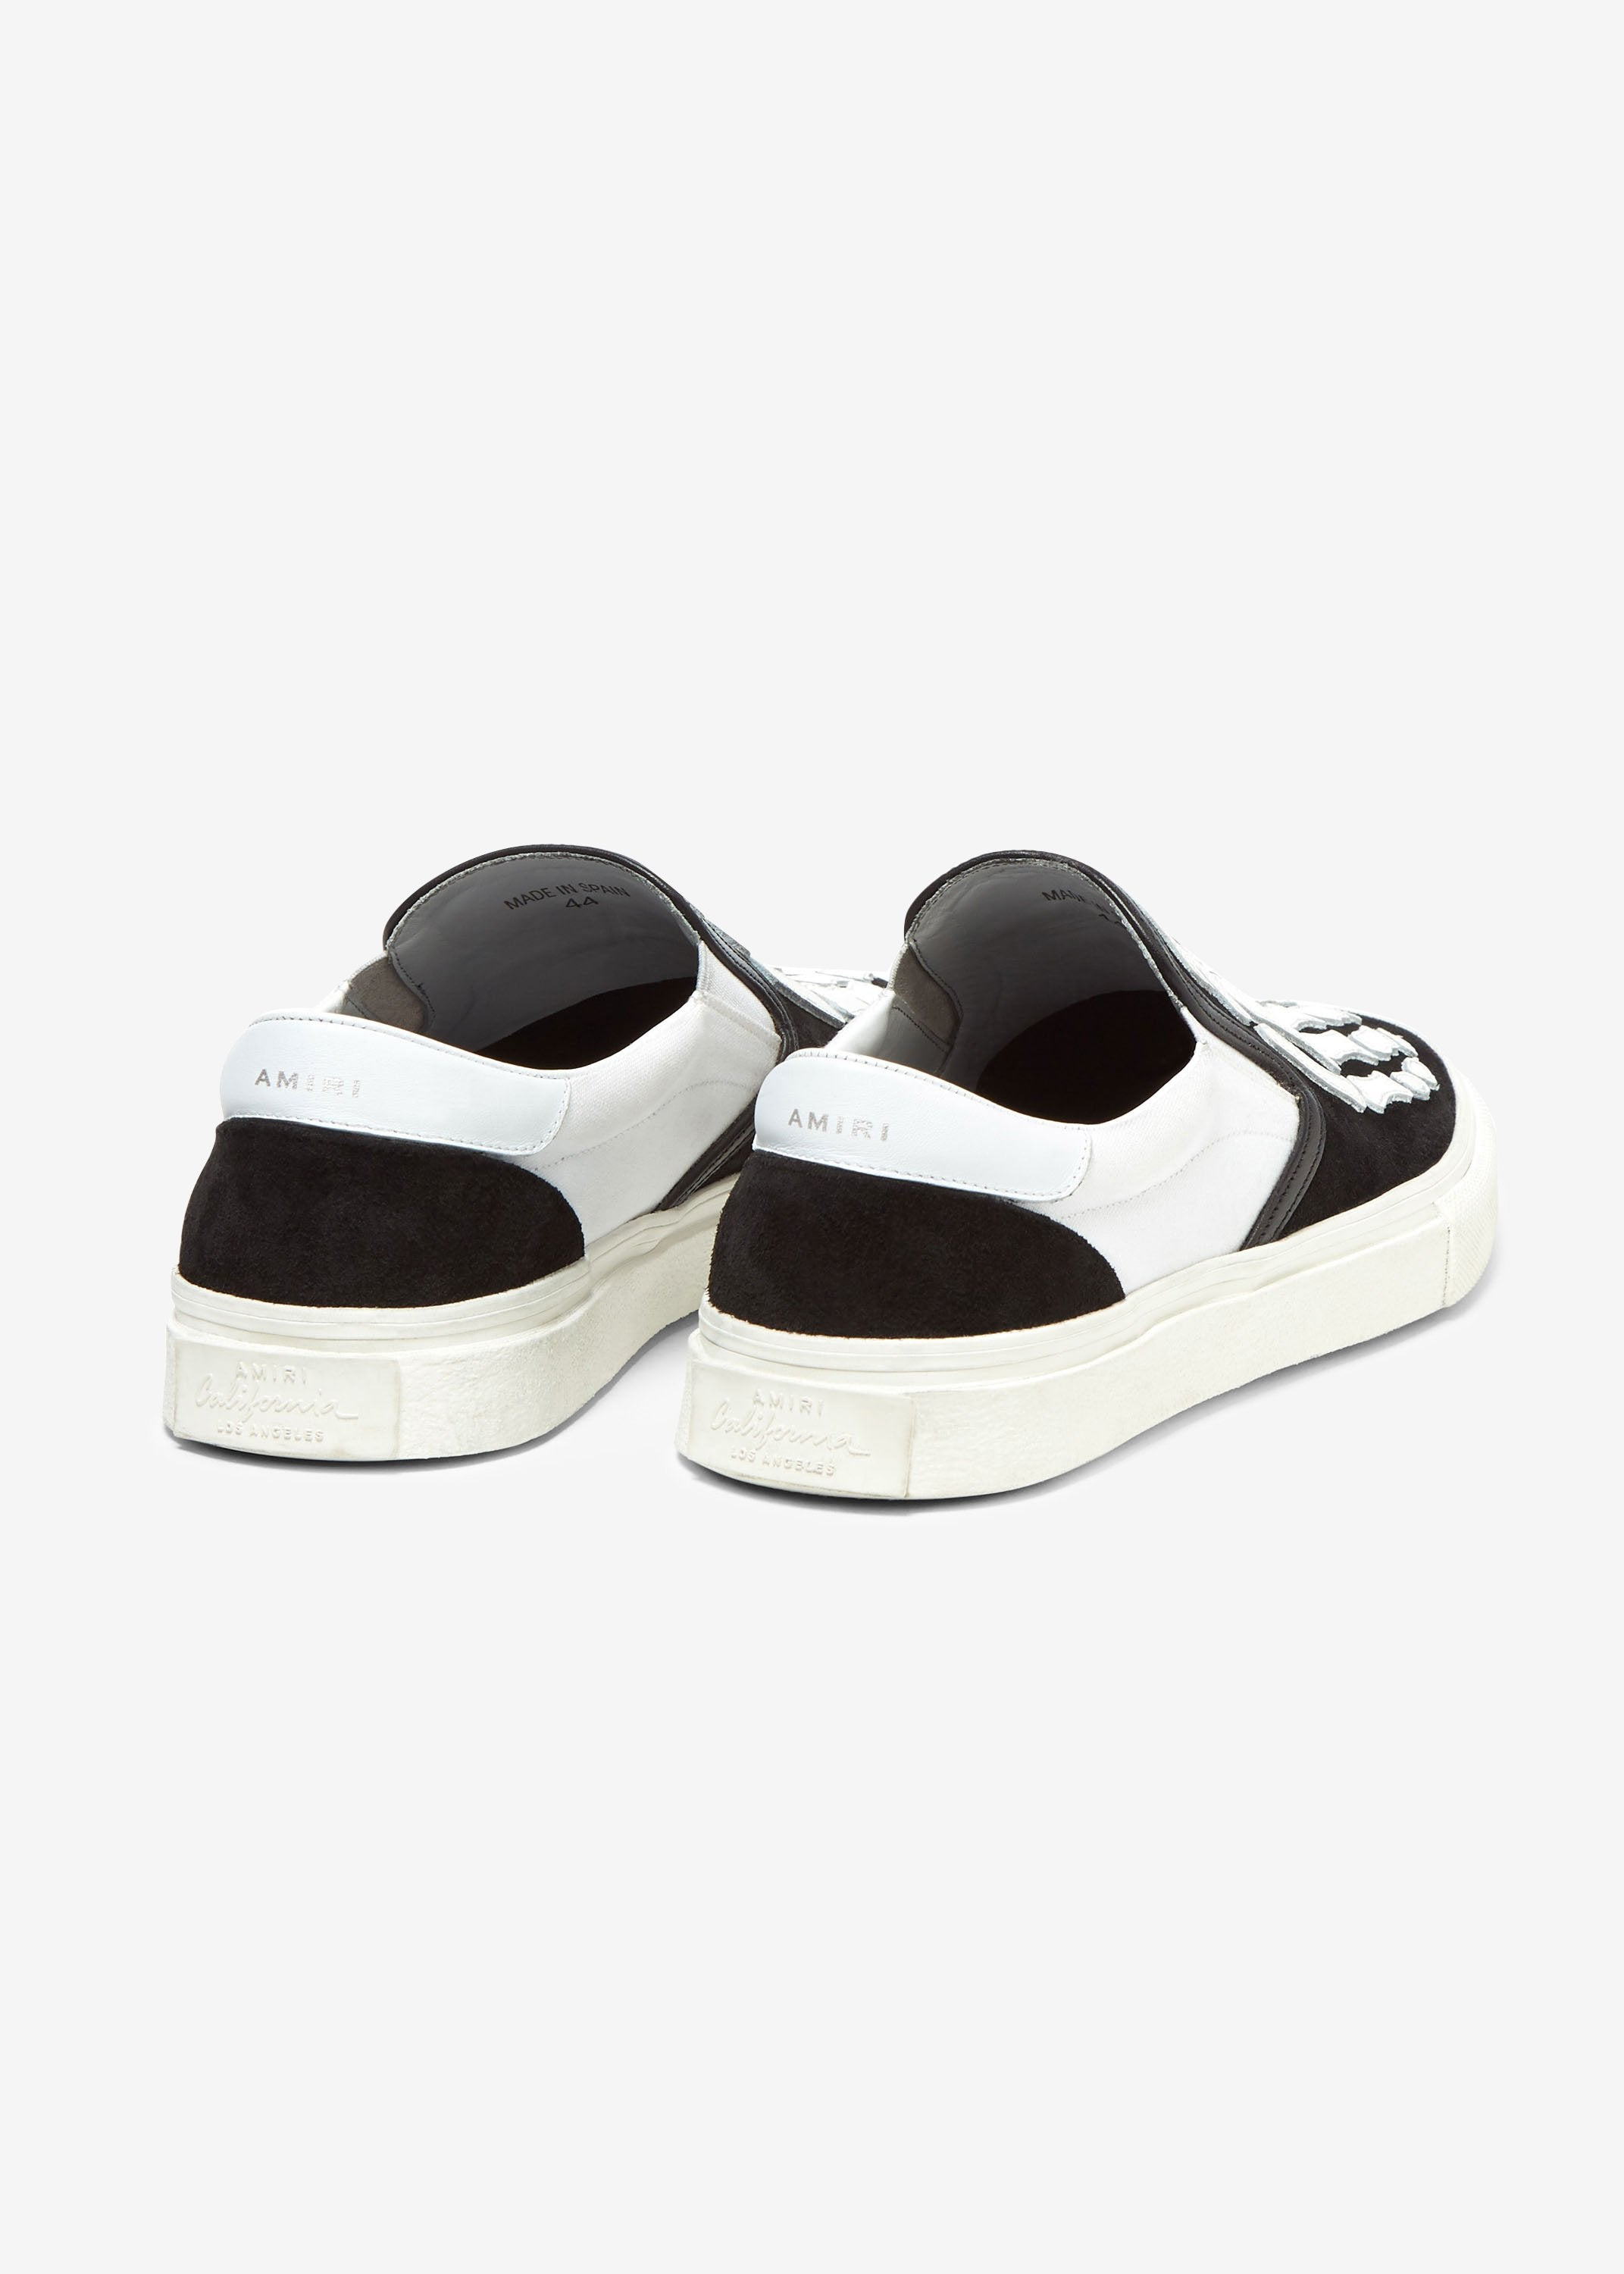 skel-toe-slip-on-black-white-image-3